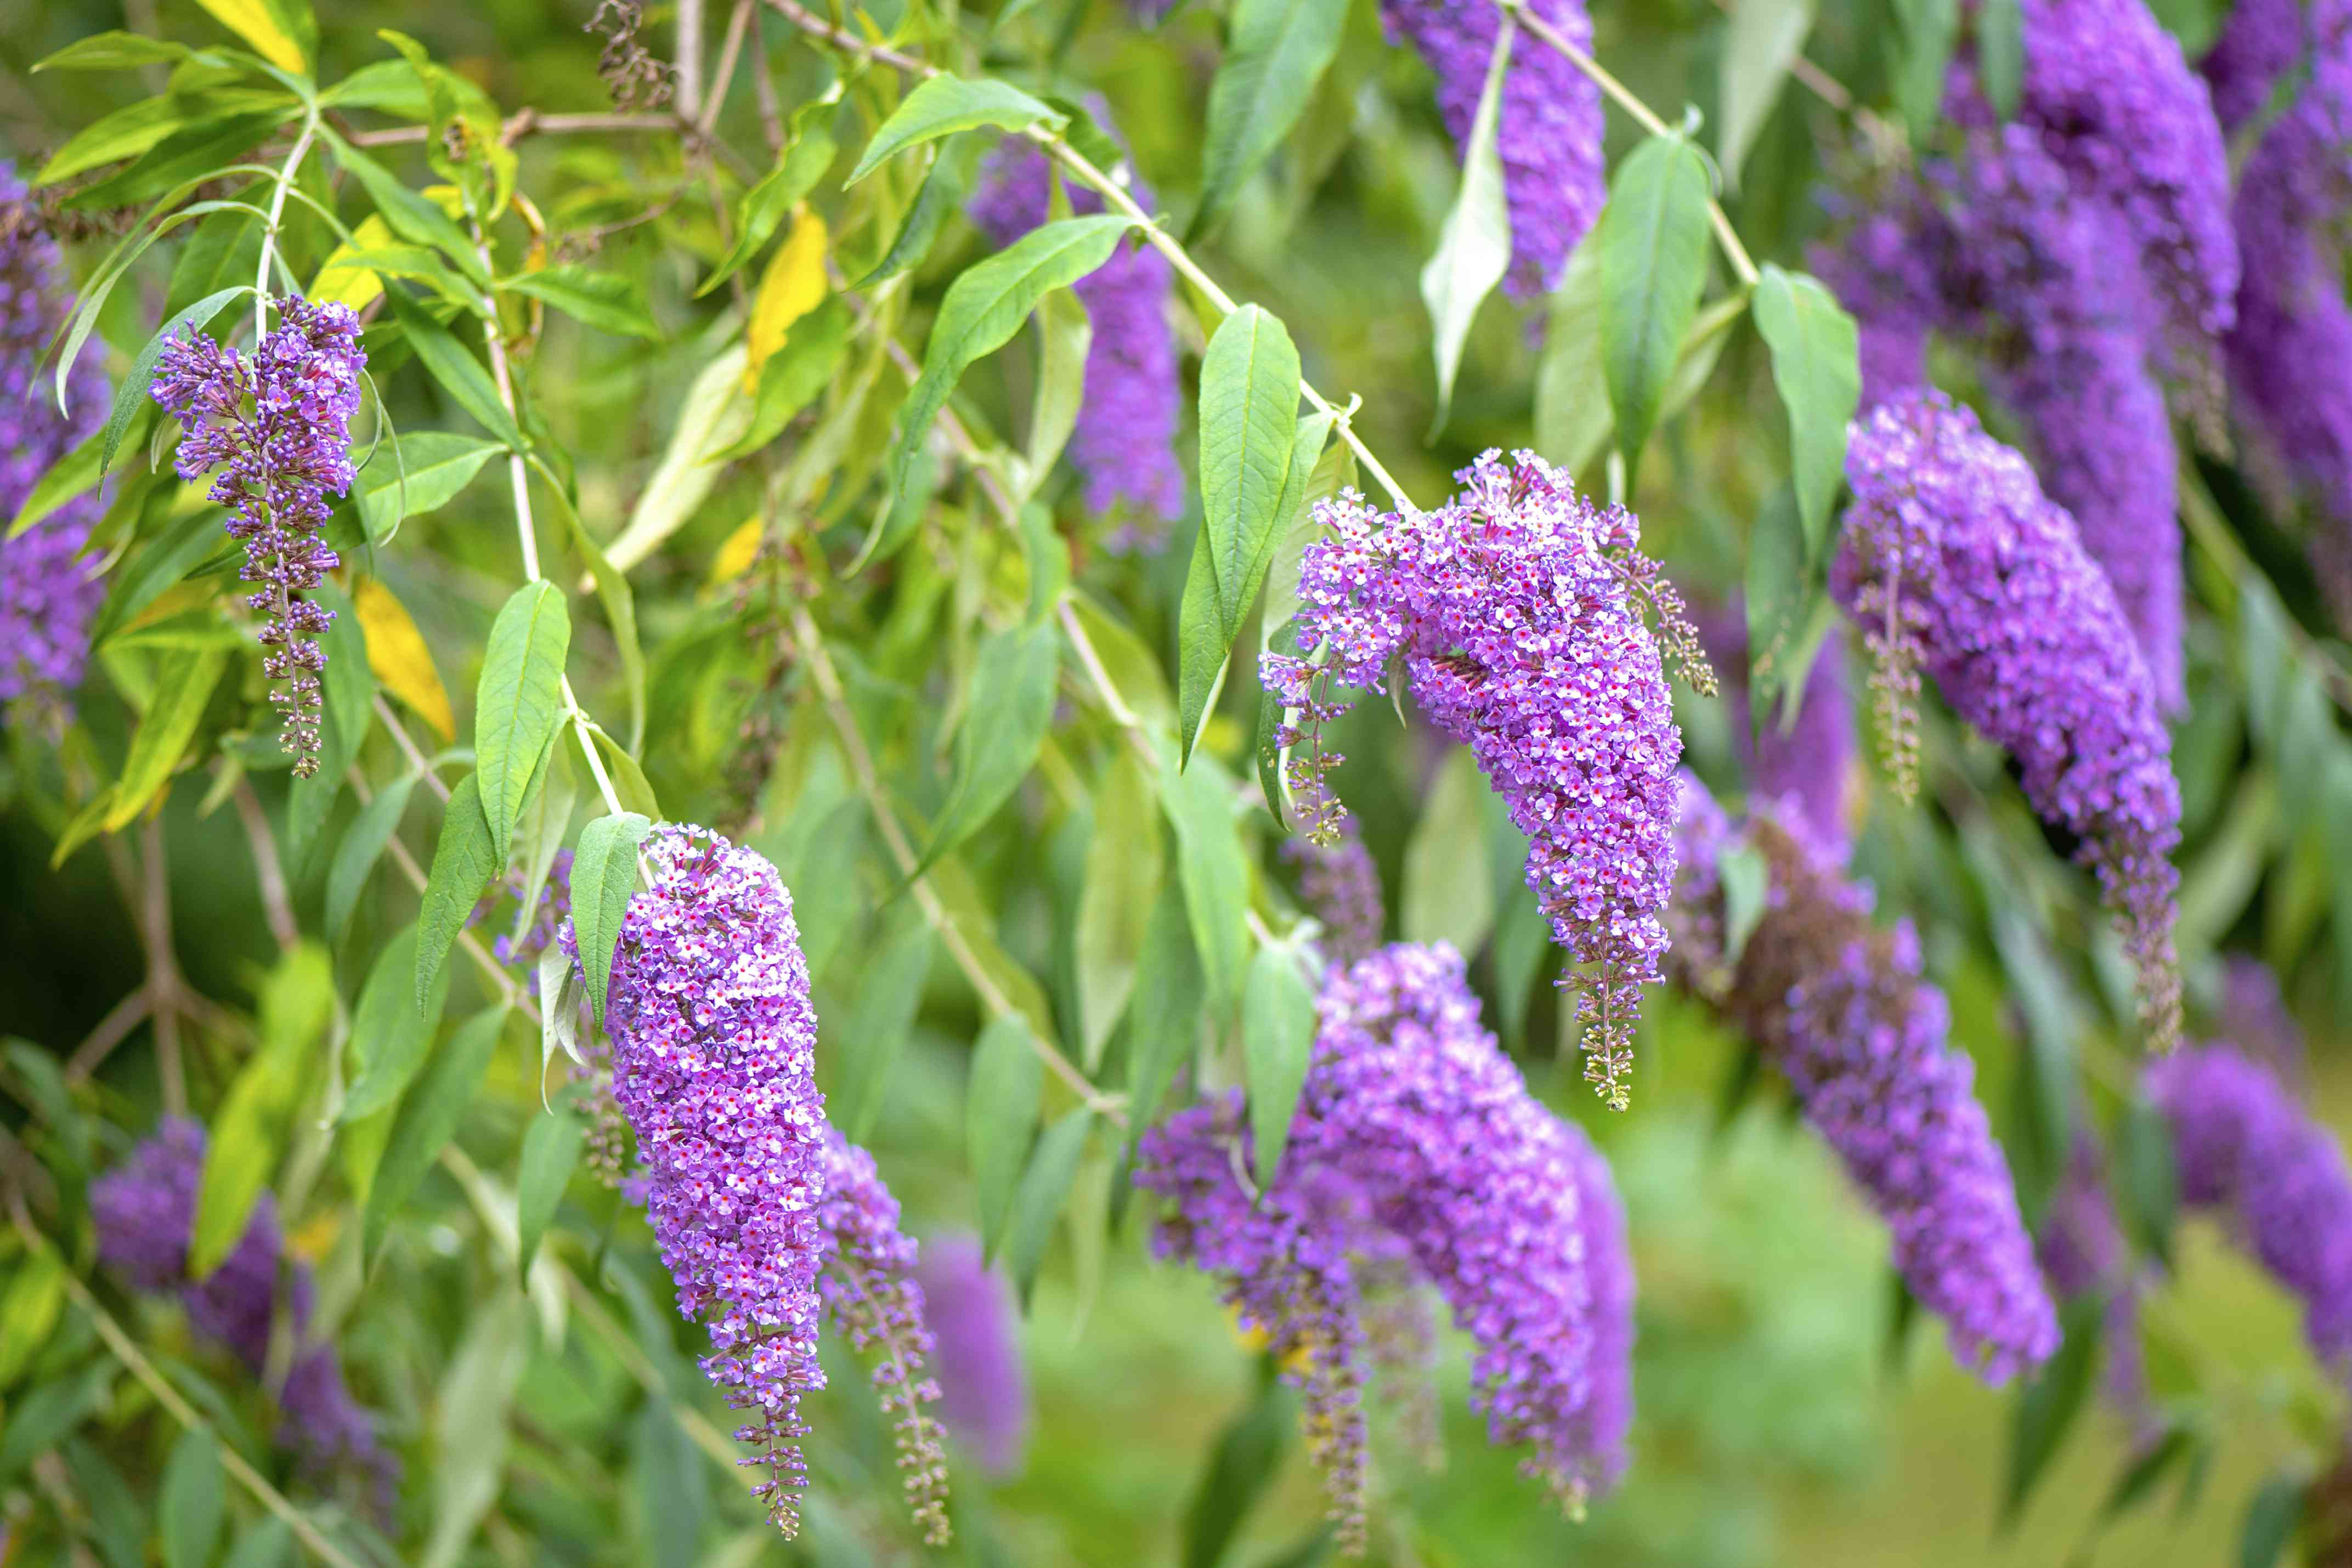 Close-up image of the beautiful summer flowering Buddleja, or Buddleia, commonly known as the butterfly bush purple flowers